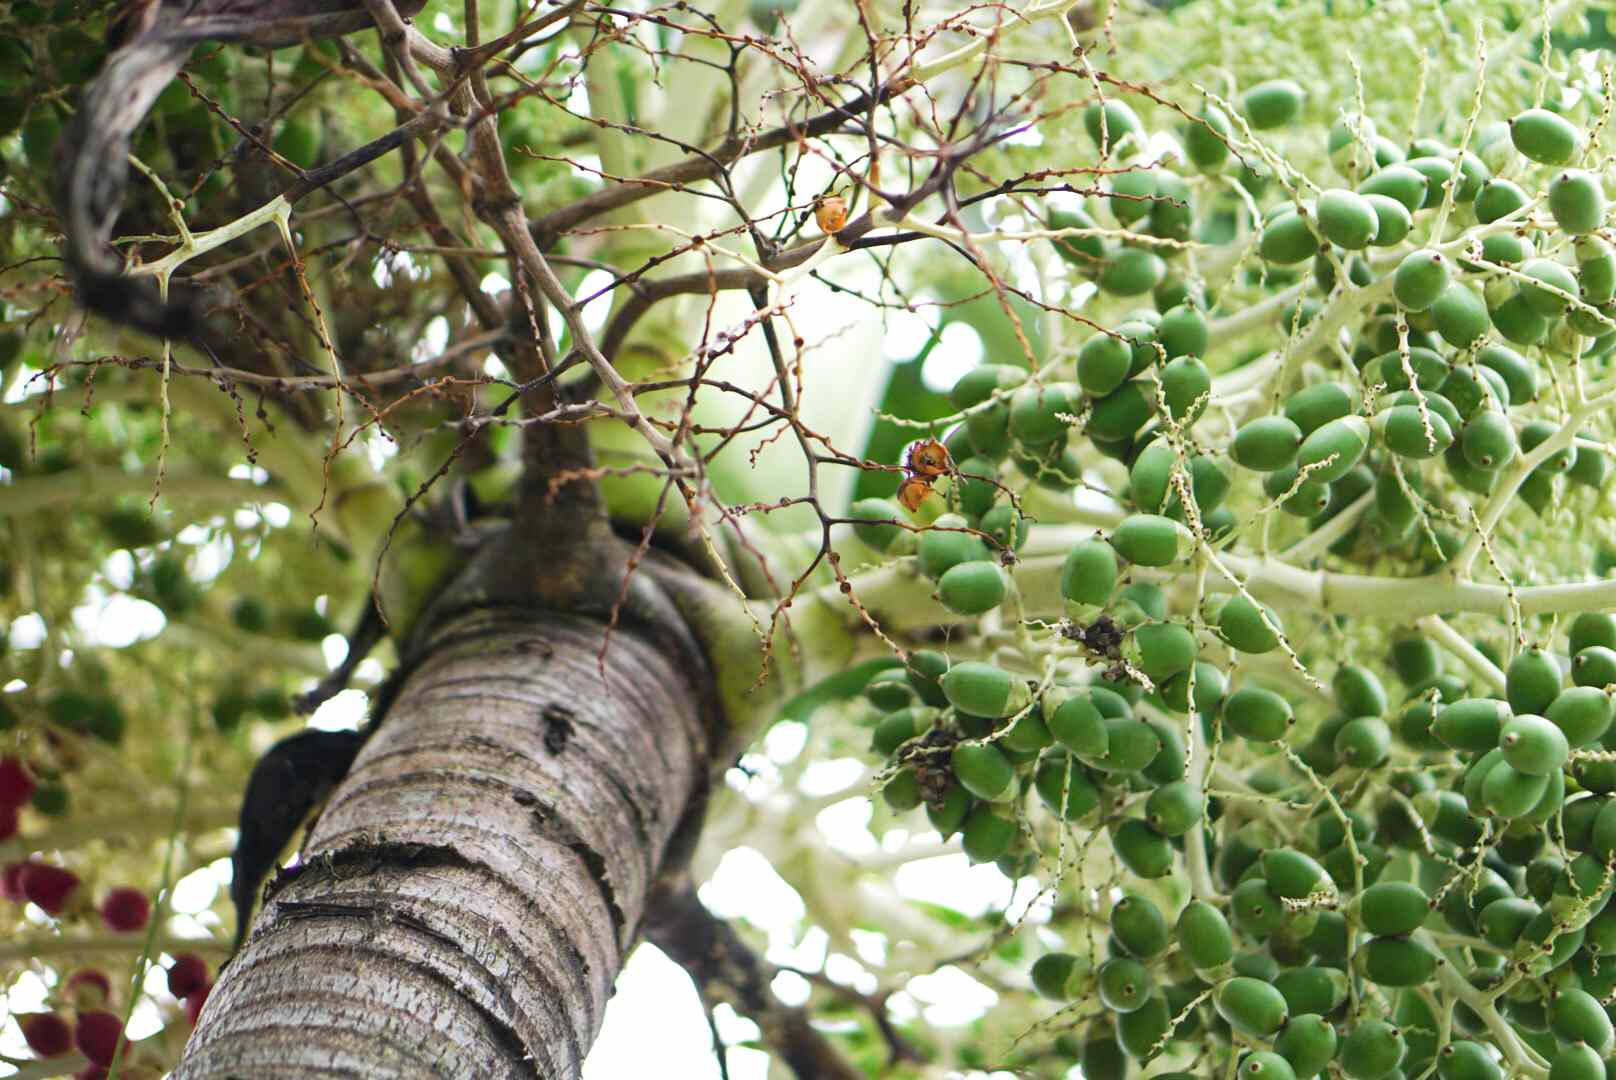 Flowering palm tree with green seeds and branches